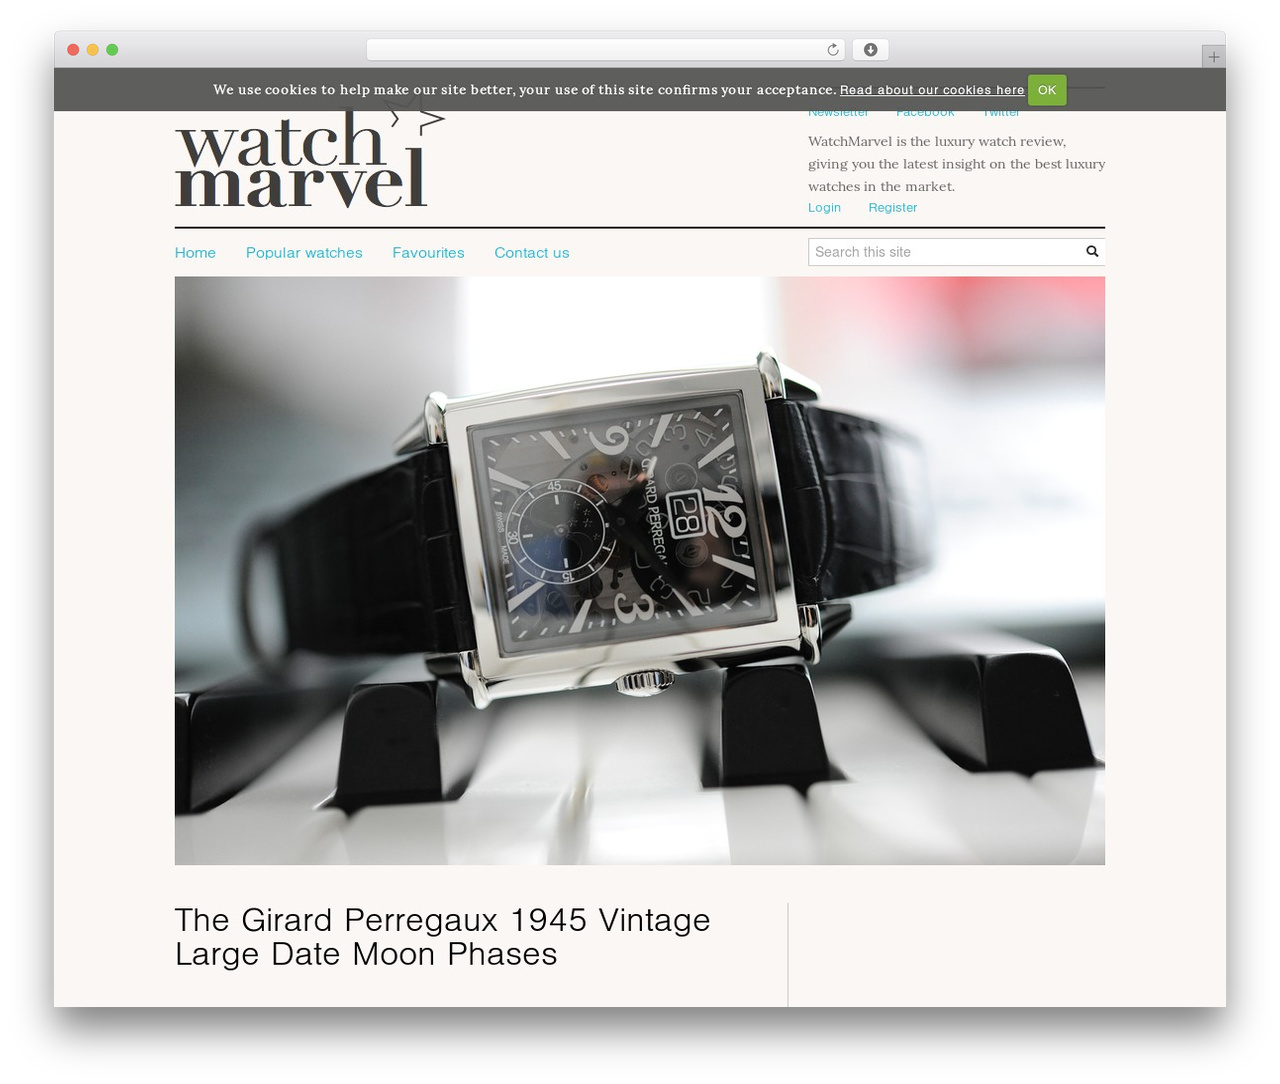 WordPress template Verticalcontent Base Theme - watchmarvel.com